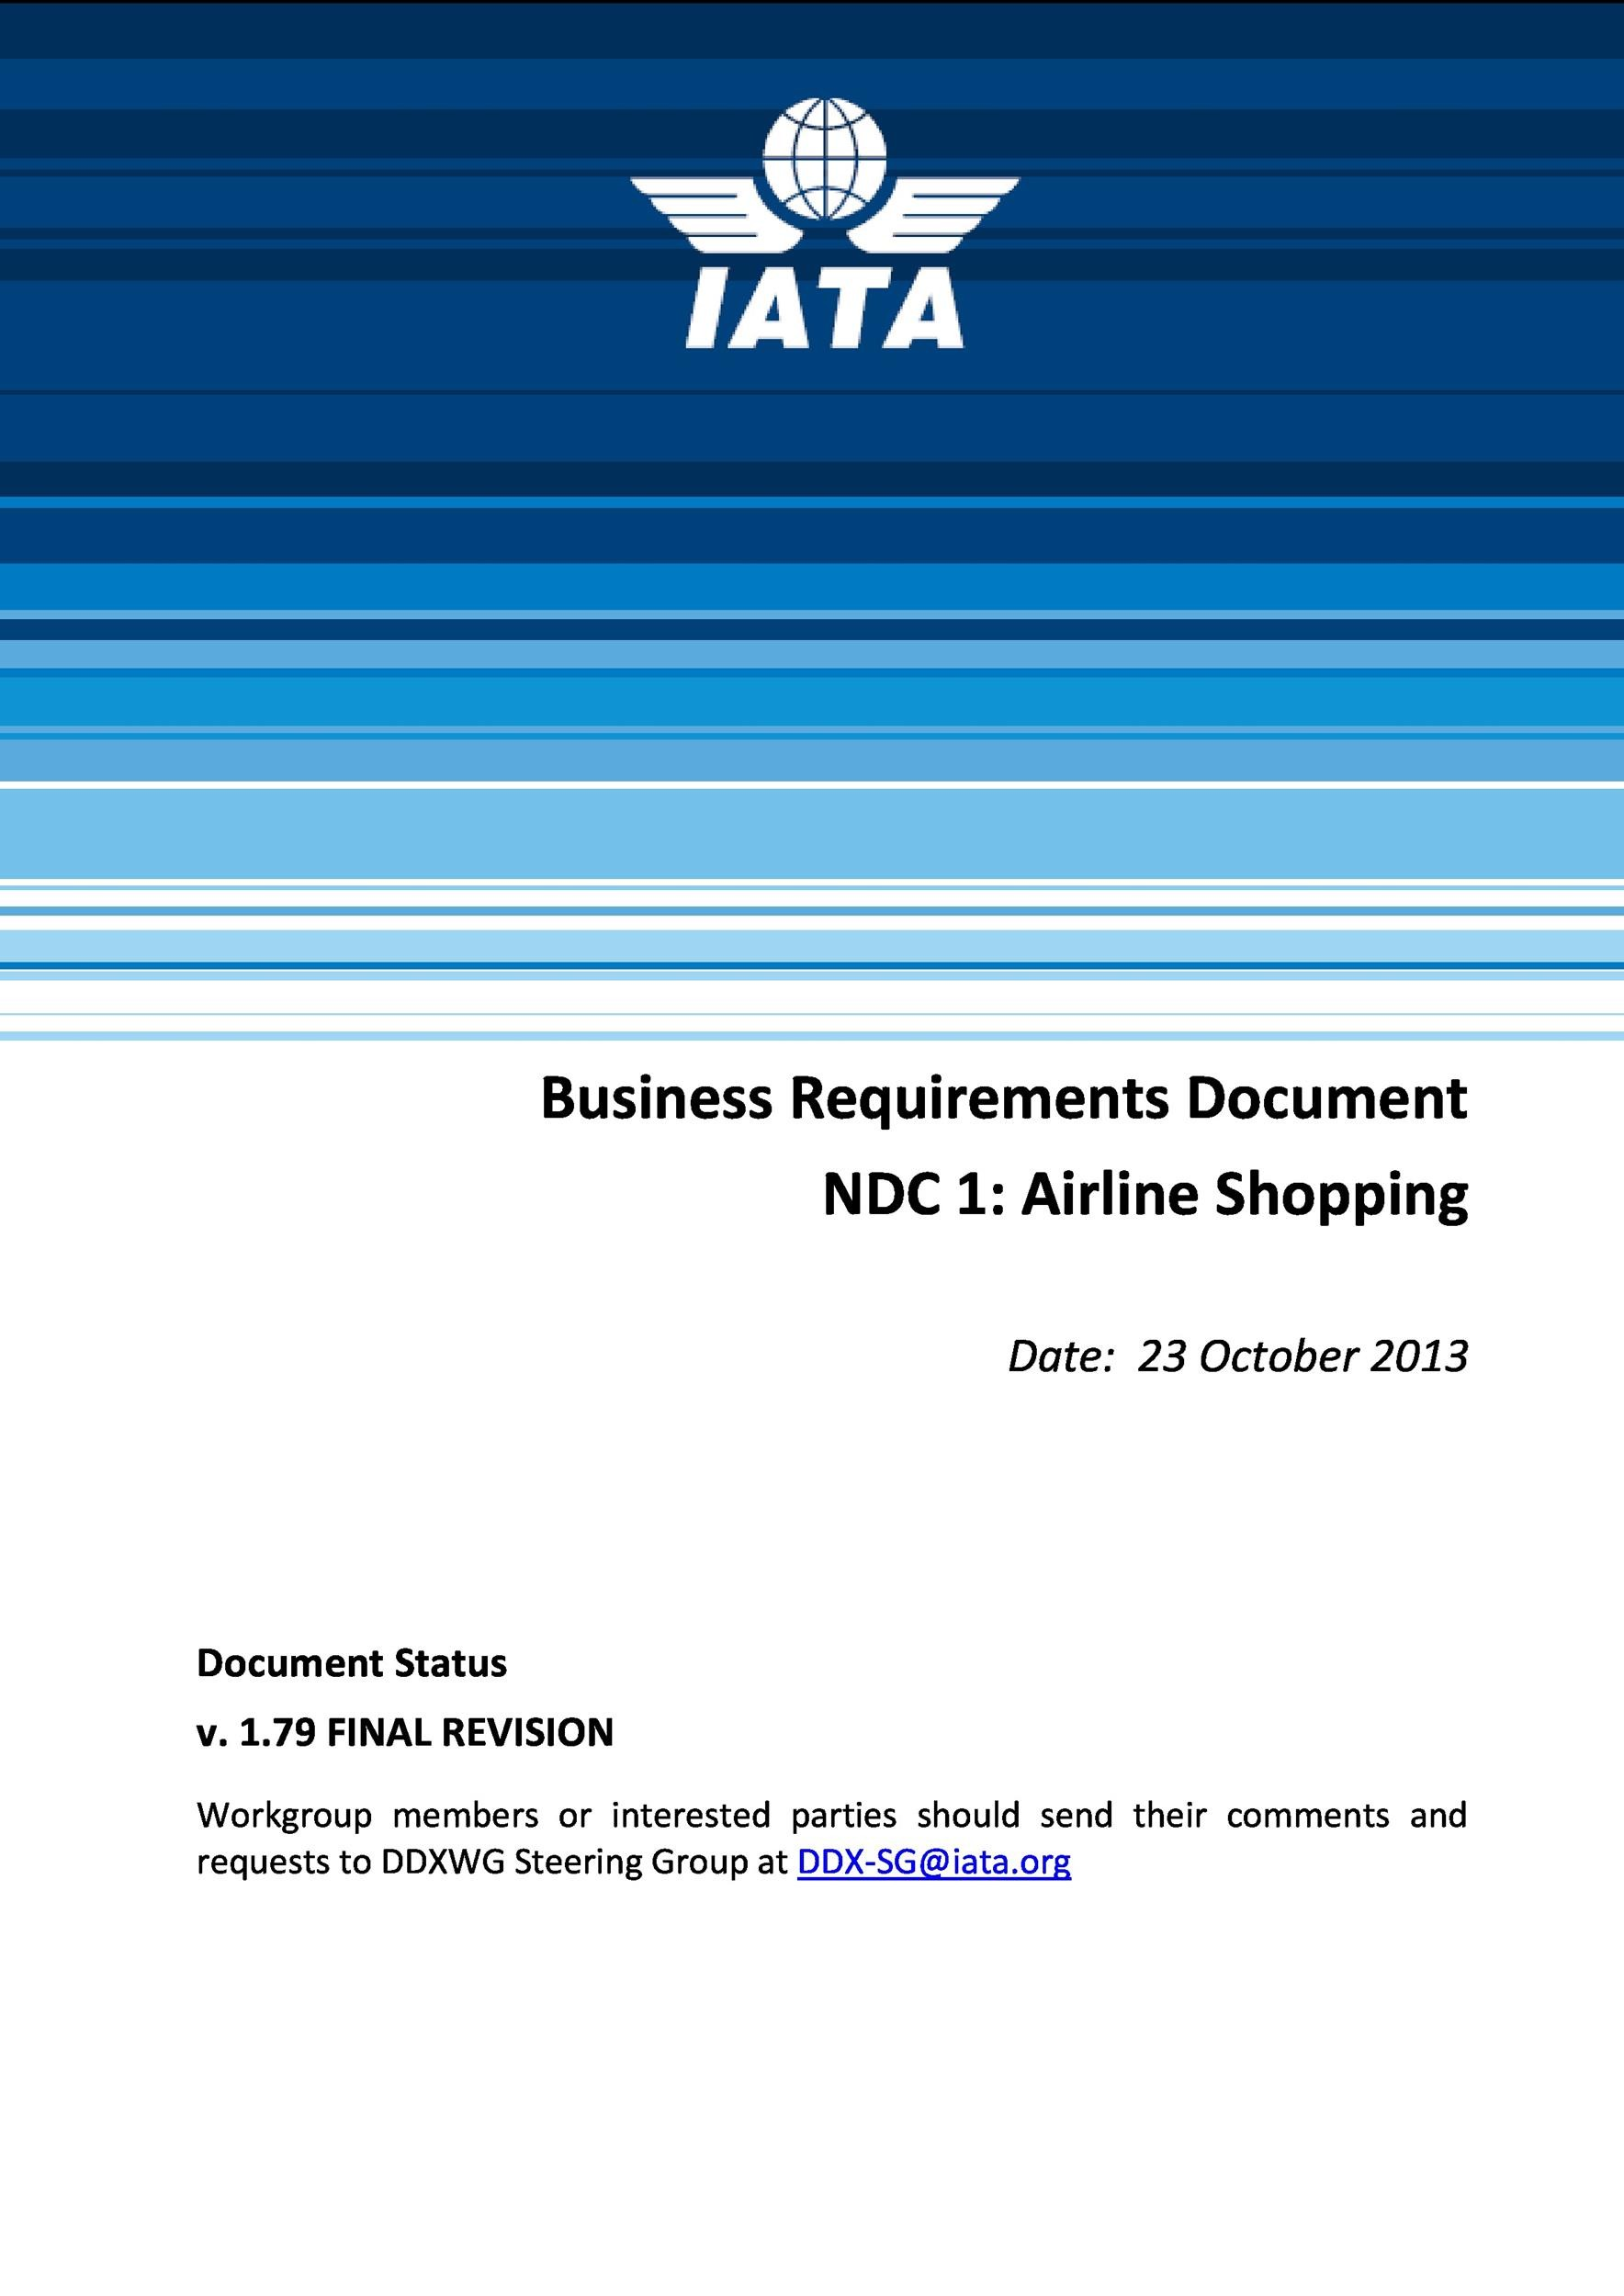 Free business requirements document template 40